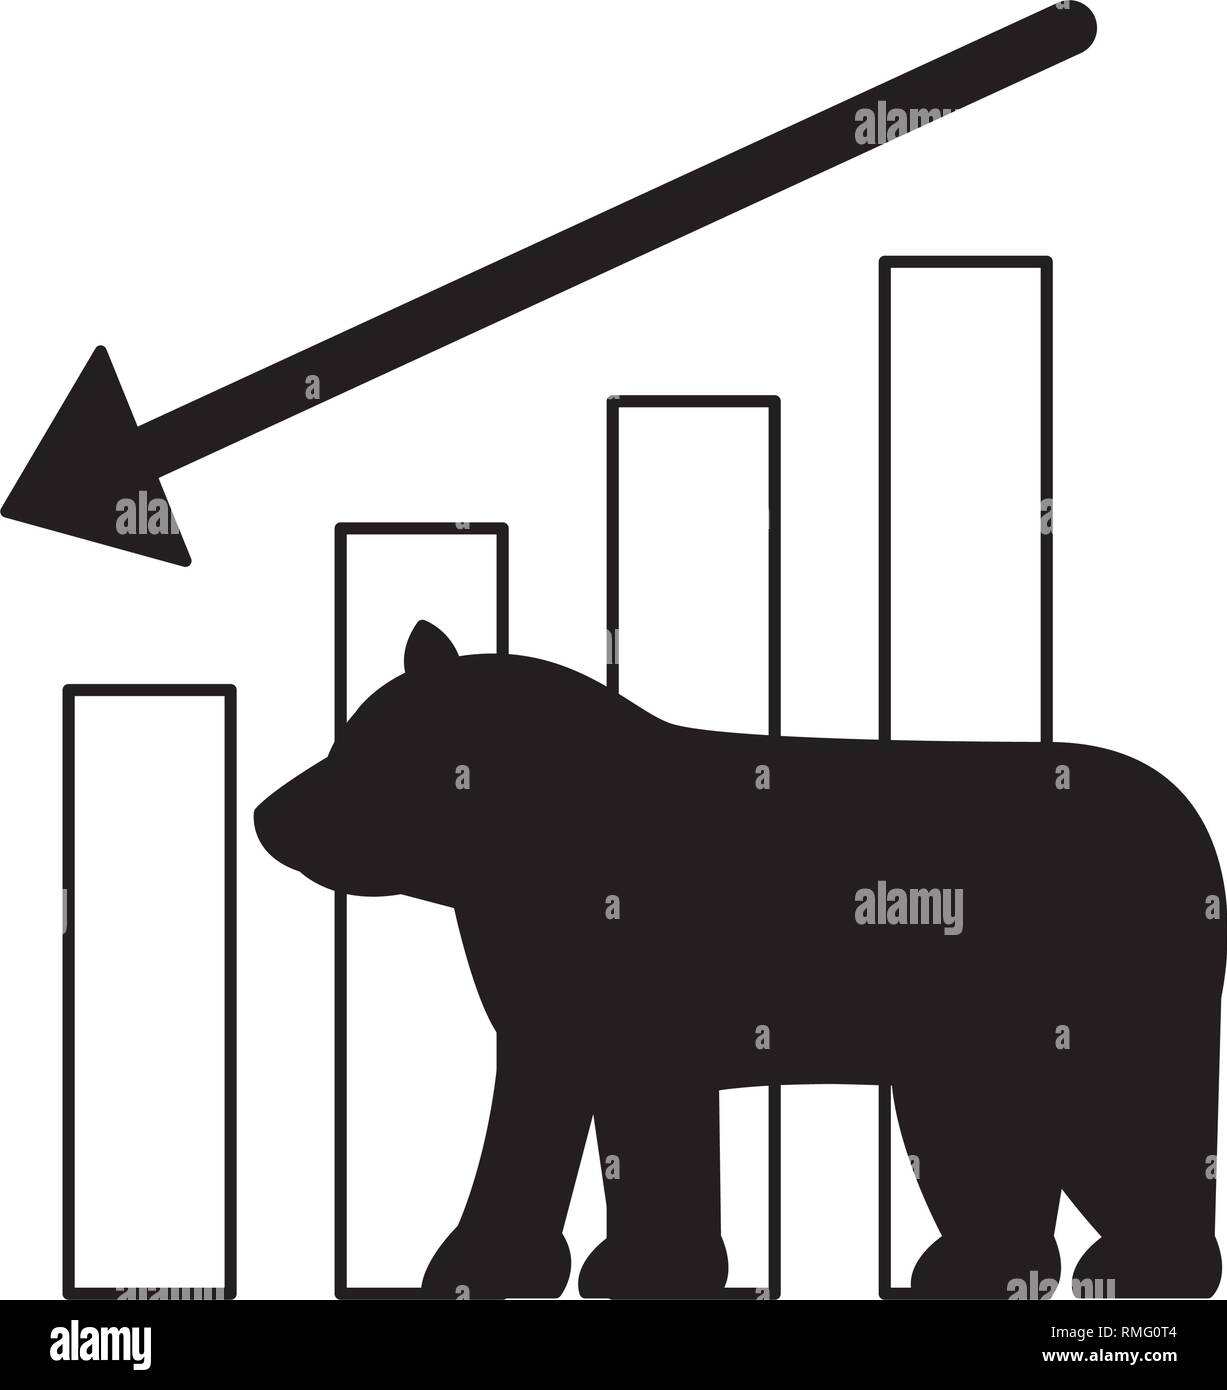 bear downtrend stock market symbol Stock Vector